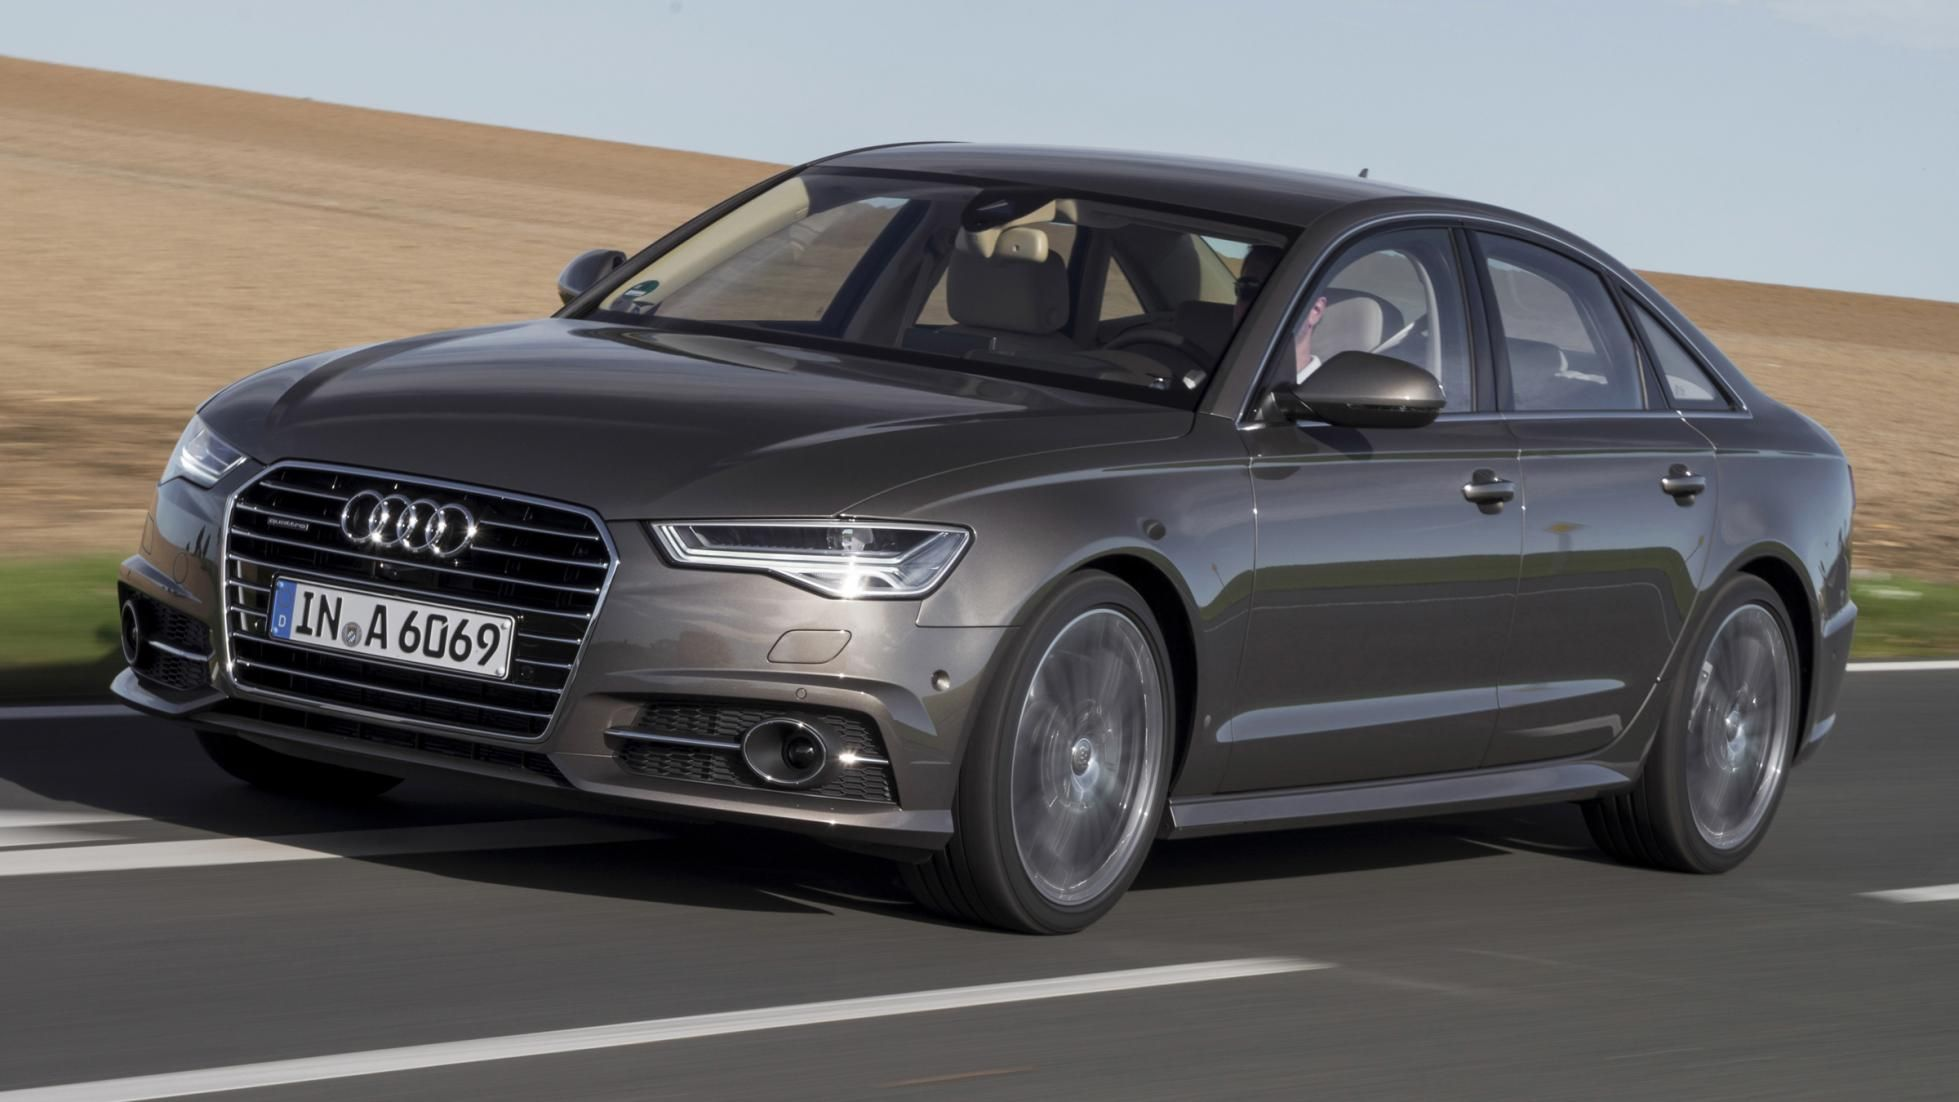 E Class Sedans Will Be Leased By Ministry Of External Affairs - Audi car below 50 lakh